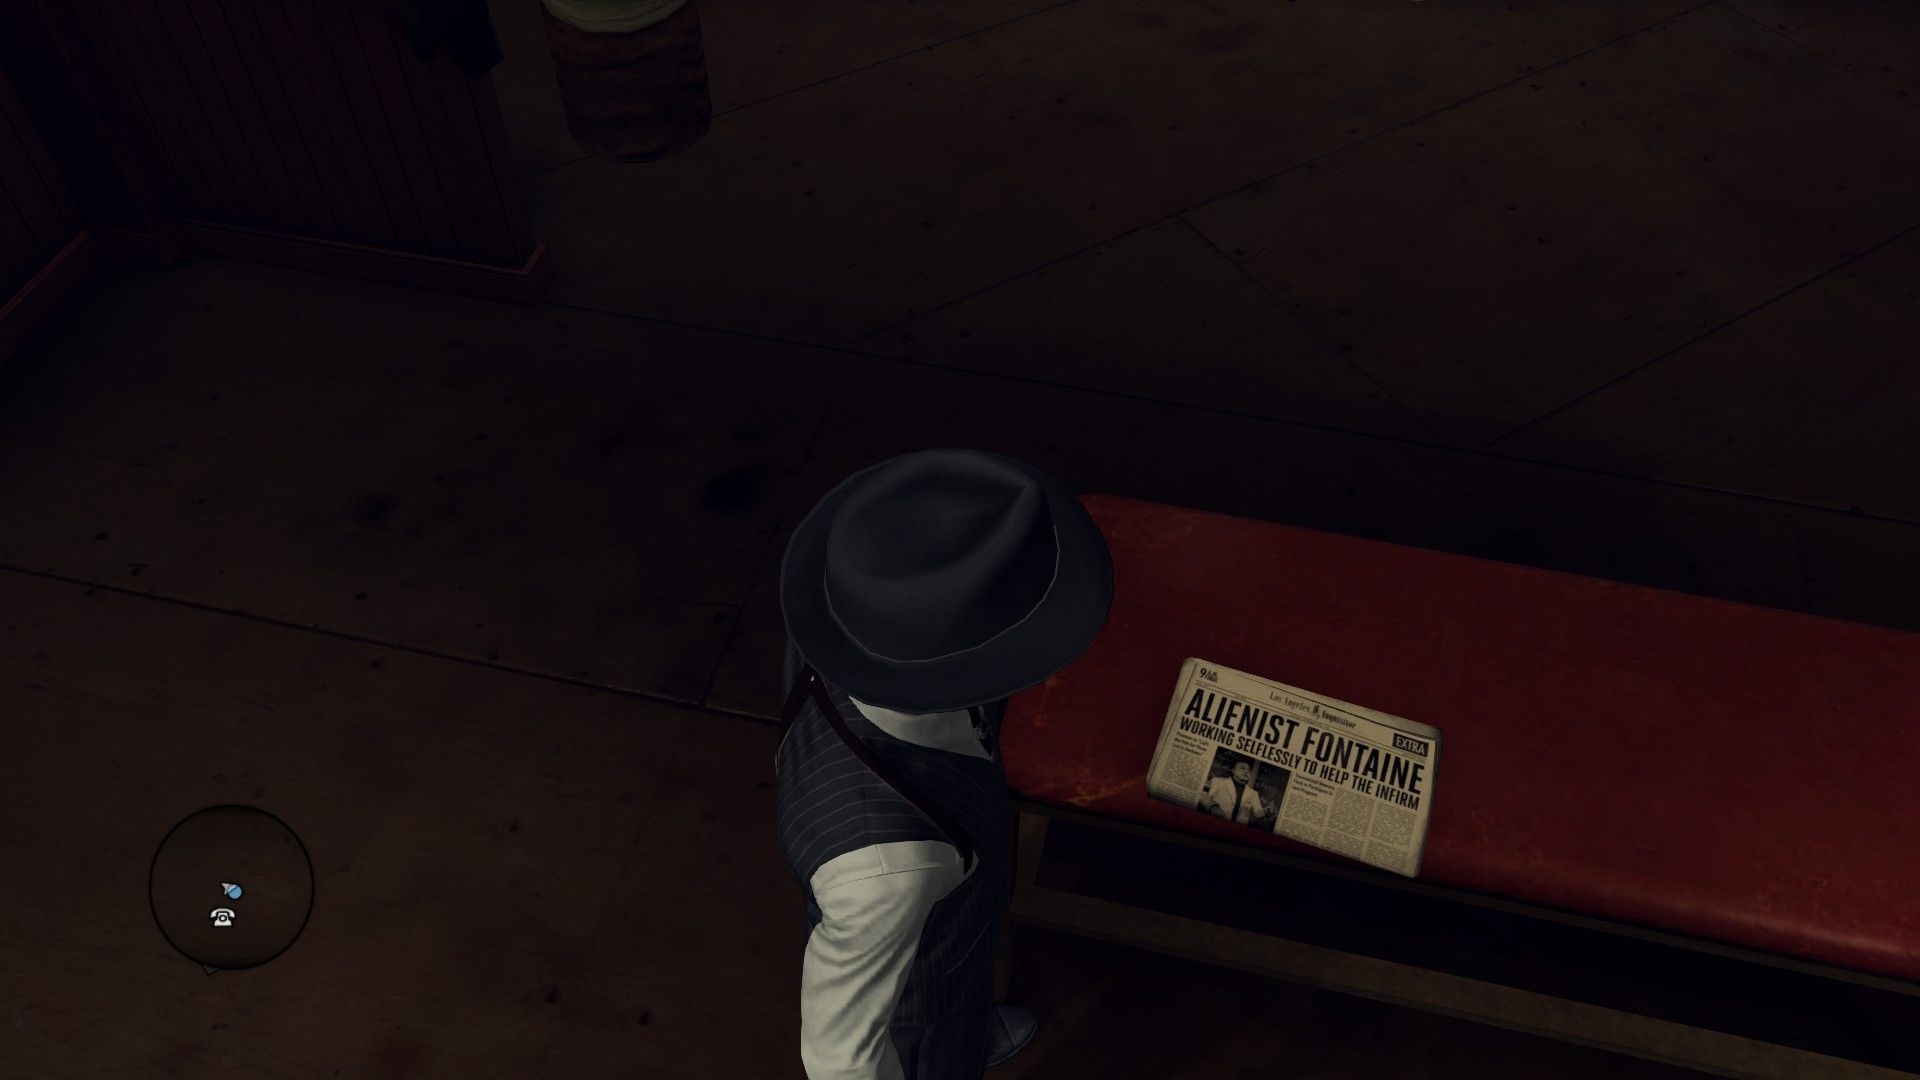 L.A. Noire: The Complete Edition Windows Those papers provide very important background information to the main story.